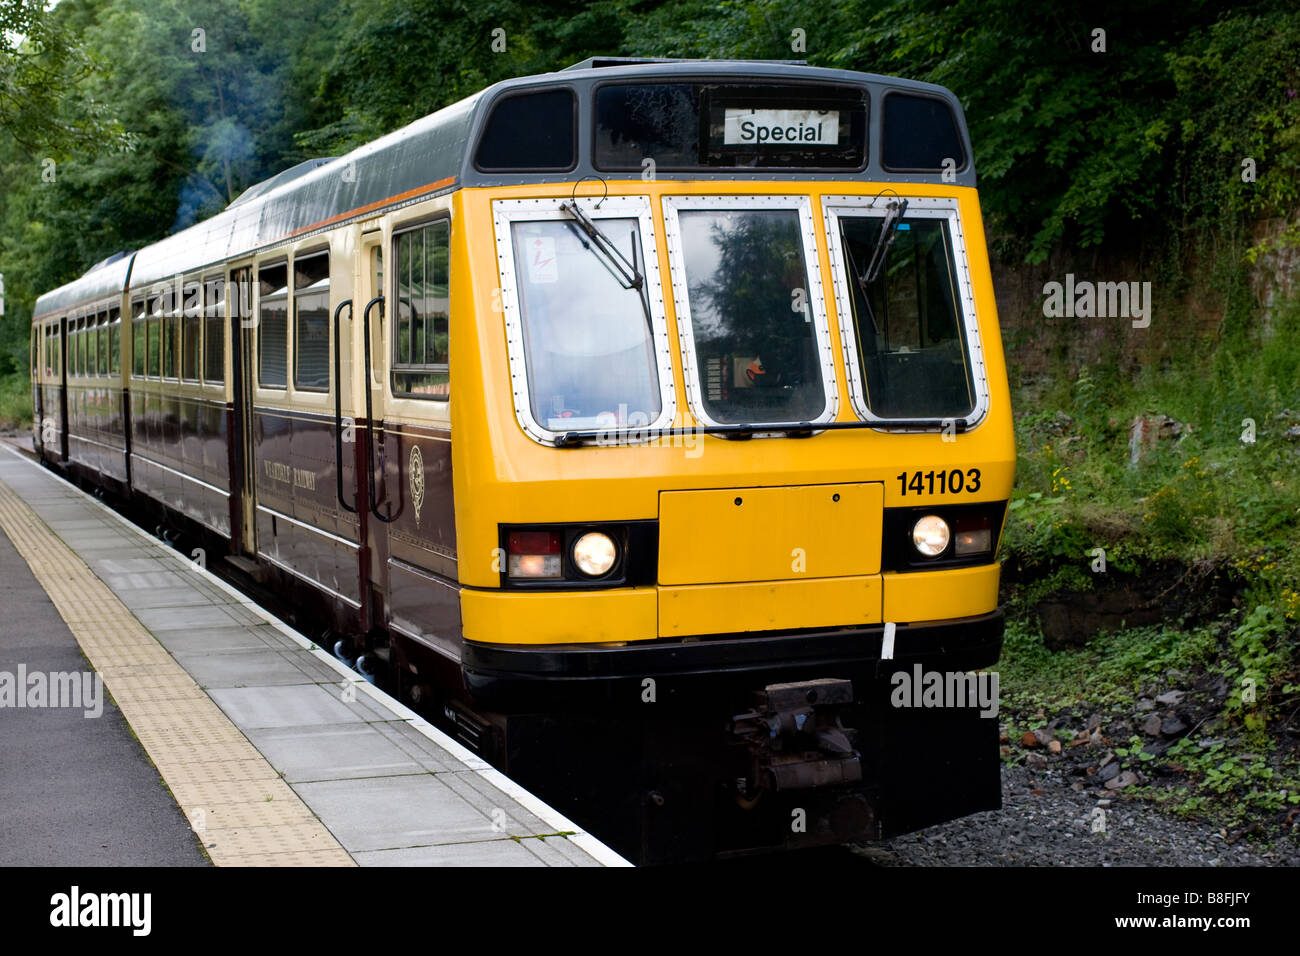 A class 141 DMU train starting off from Wolsingham station on the Weardale Railway. - Stock Image